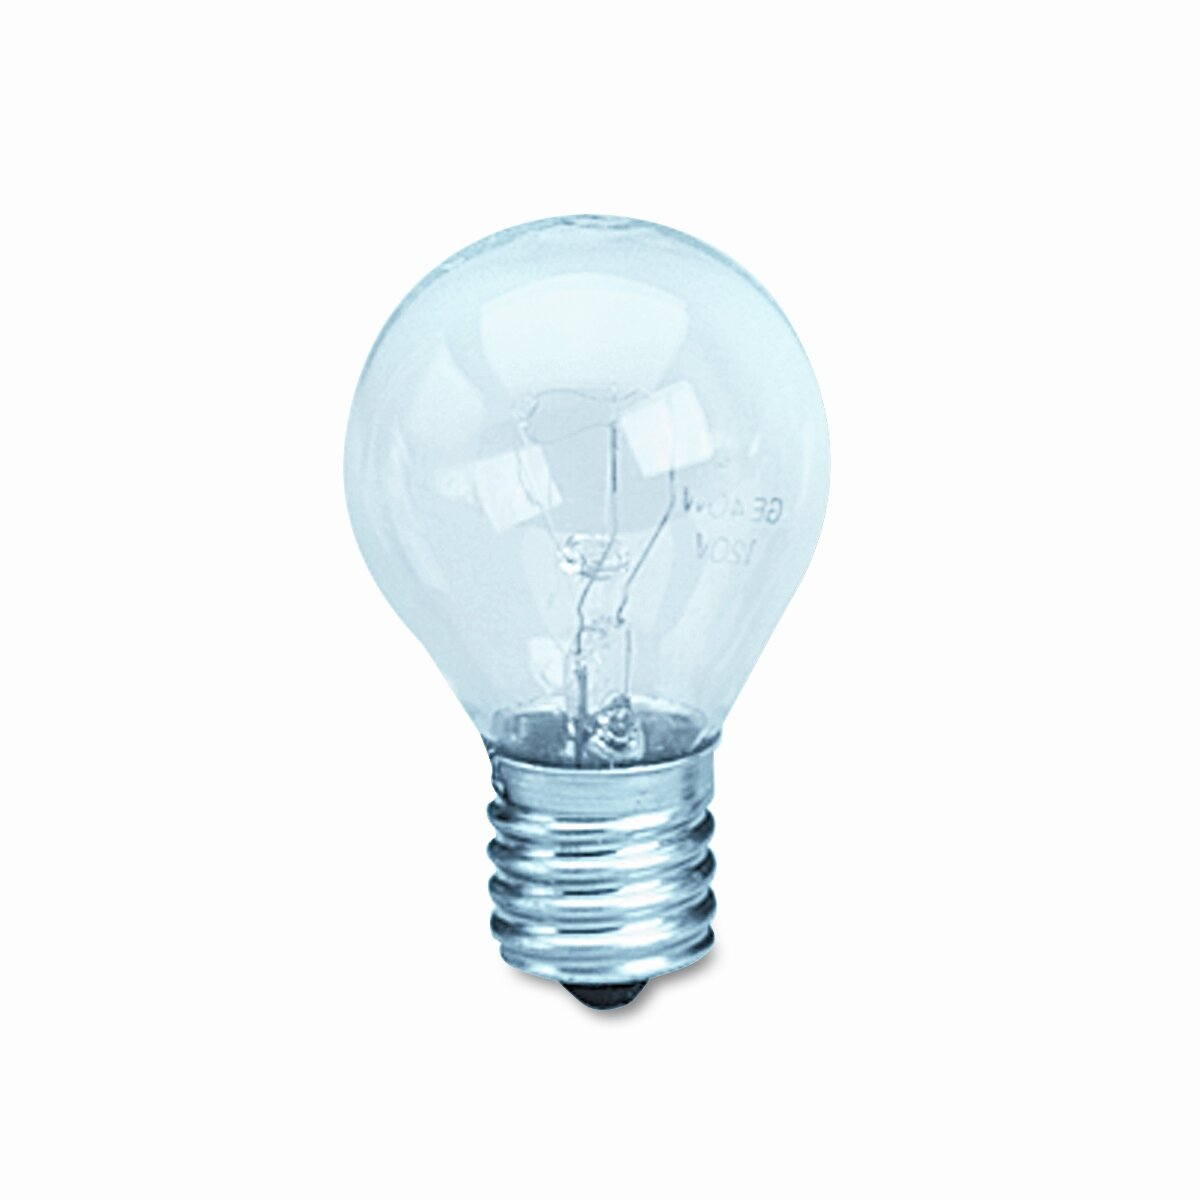 Ge 40w 120 Volt Incandescent Light Bulb Wayfair